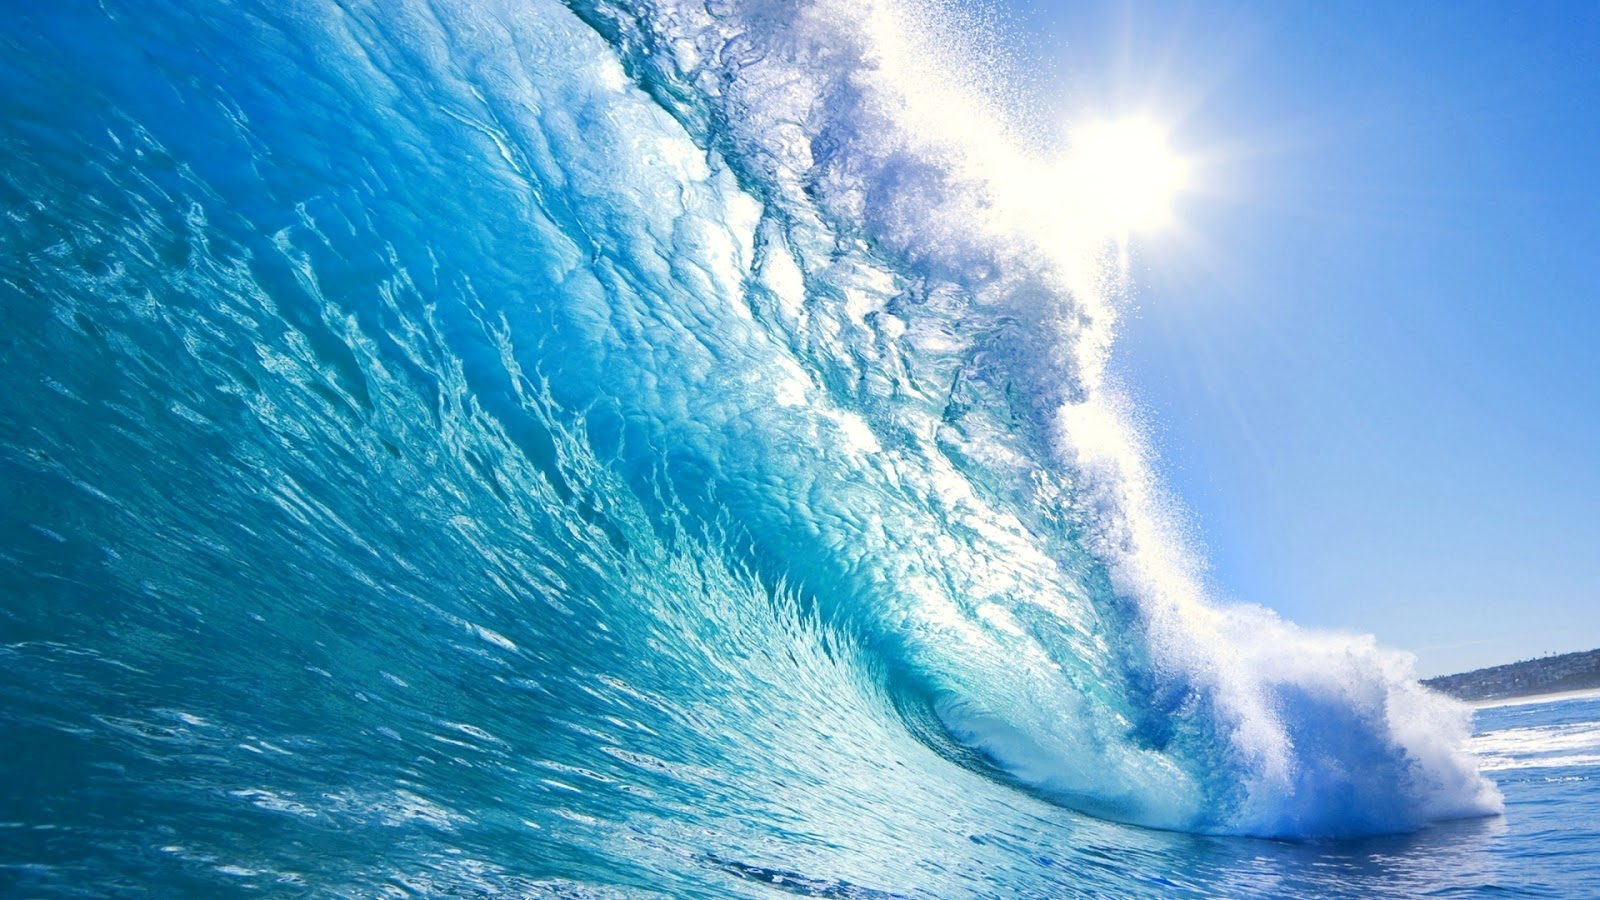 Blue Sea Wave Wallpapers - Wallpapers